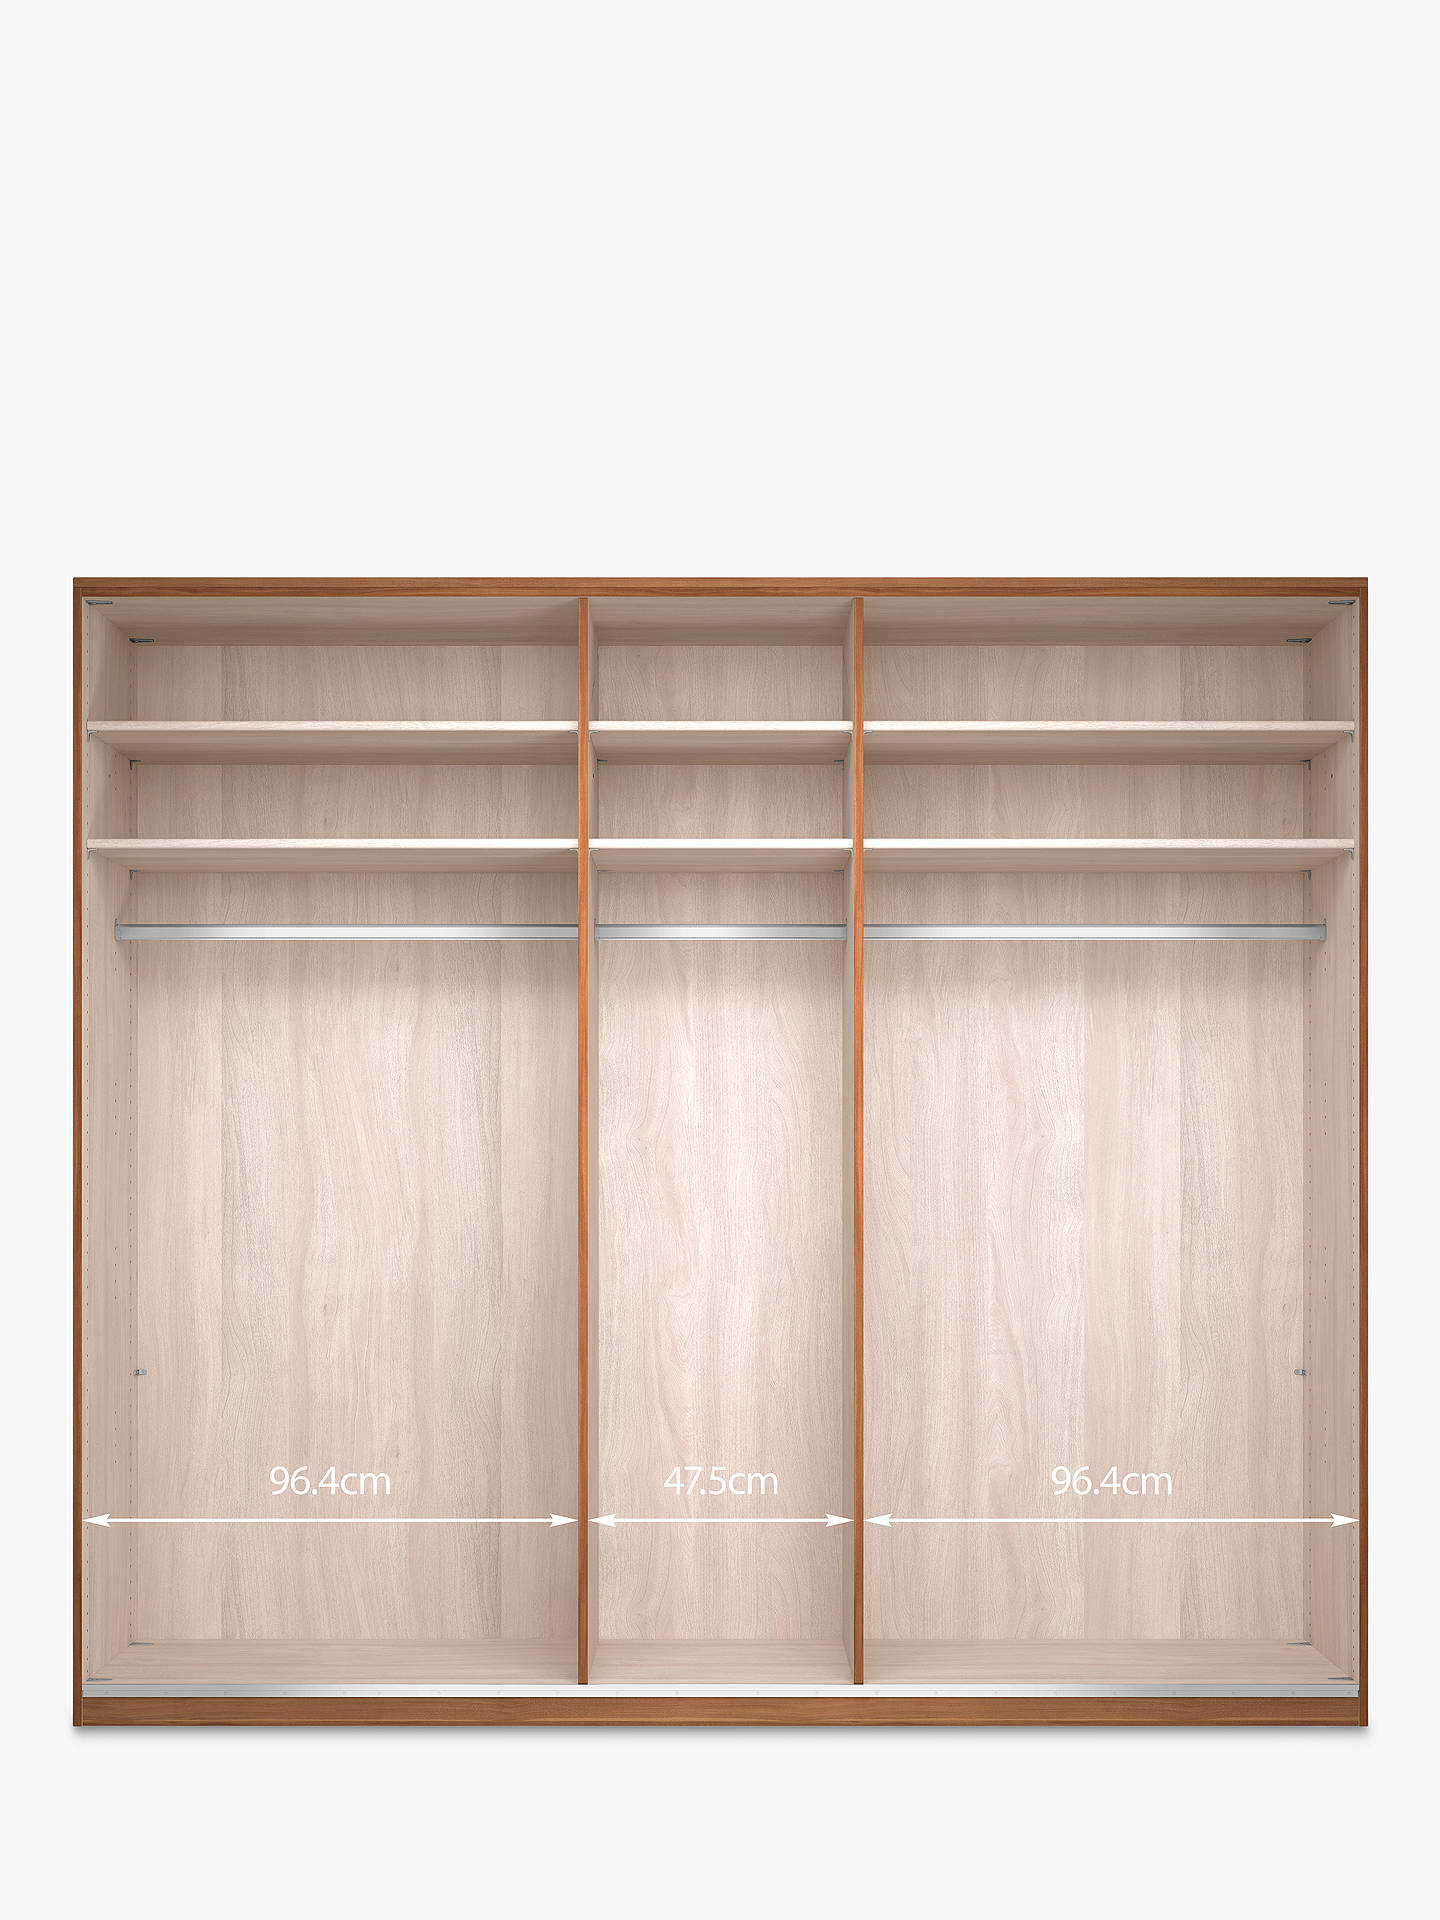 BuyJohn Lewis & Partners Elstra 250cm Wardrobe with Glass Hinged Doors, White Glass/Alpine White Online at johnlewis.com